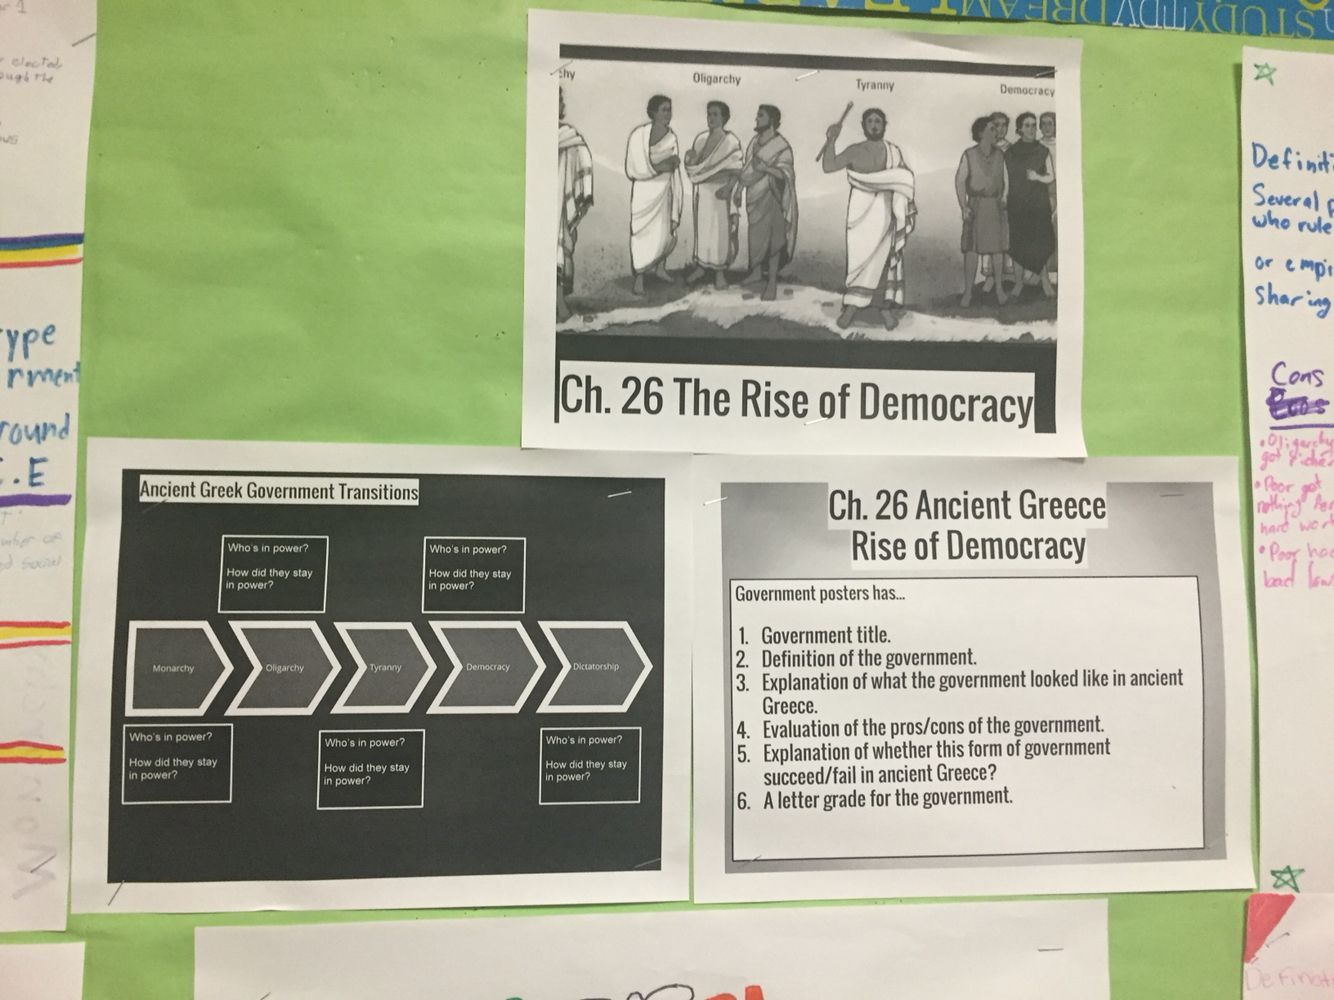 rise of democracy The age of colonization (c750-550 bce) greece was not a rich land capable of supporting a large population yet the revival of stable conditions and the rise of a new class of independent farmers practicing a mixed agriculture of grains, vines, and orchards after 800 bce brought population growth.